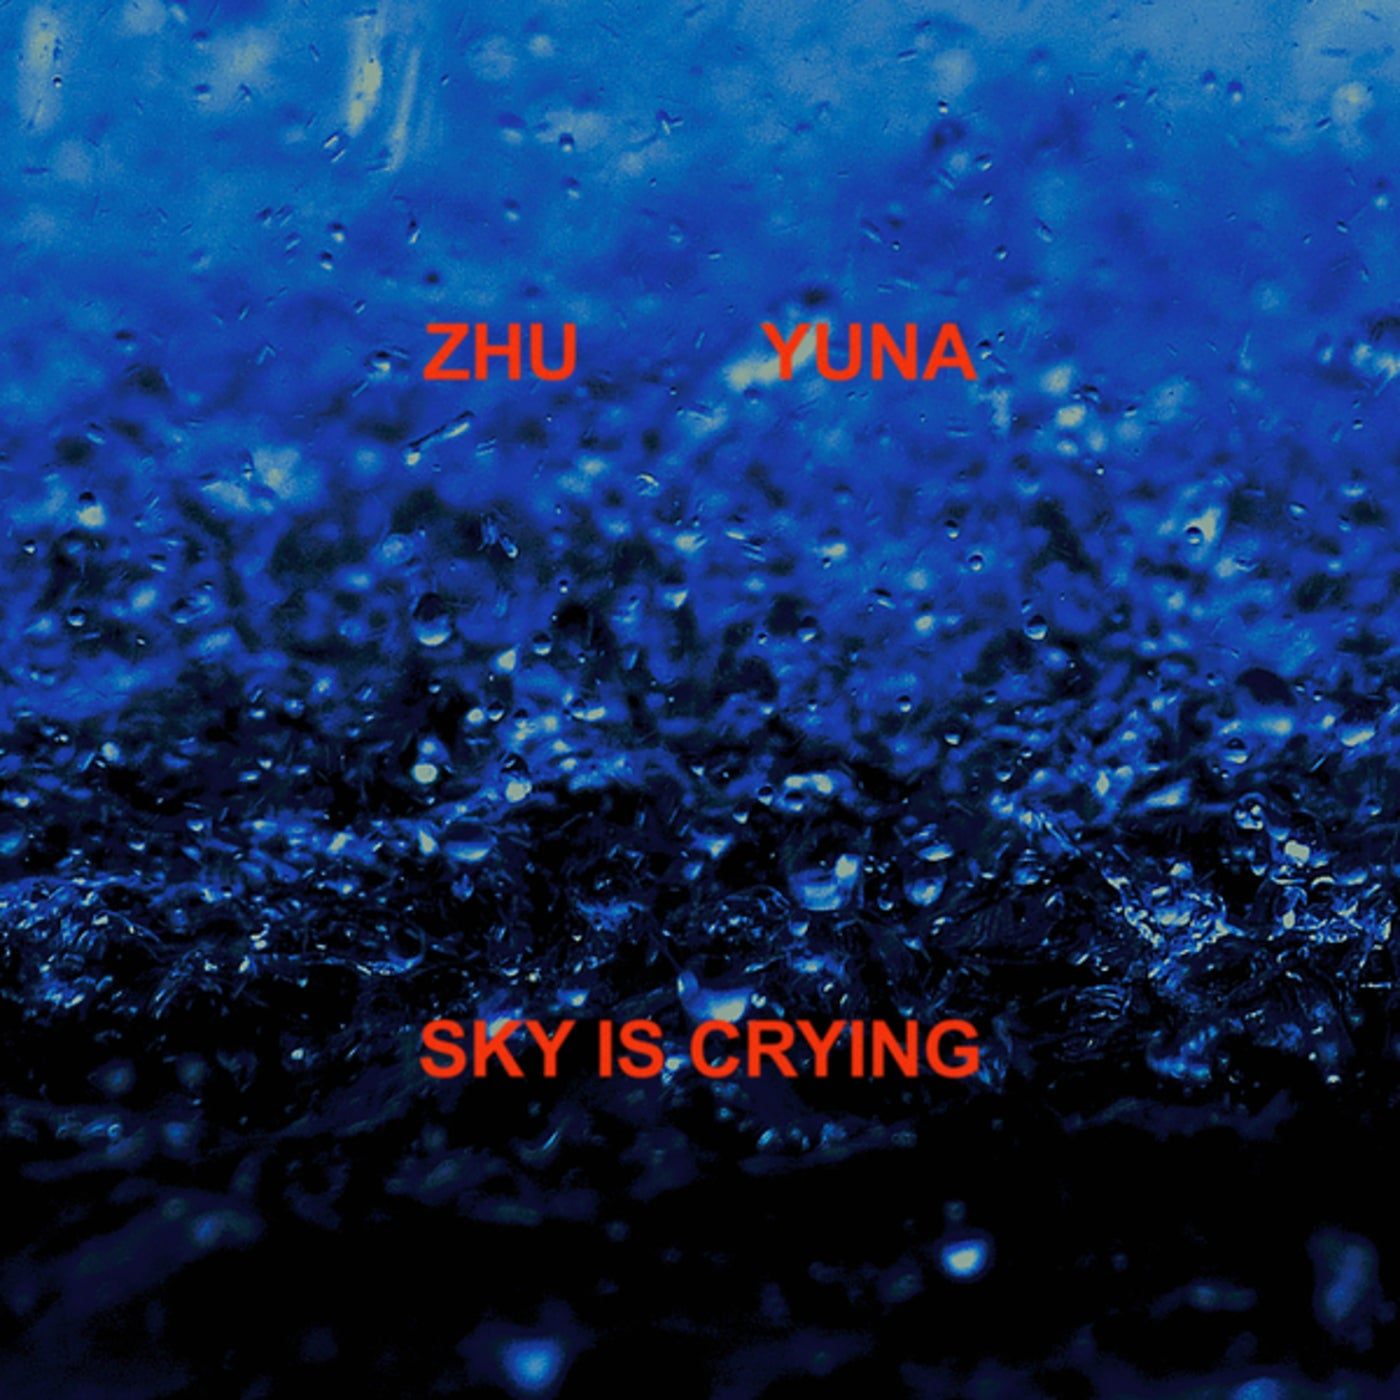 Sky Is Crying (Original Mix)